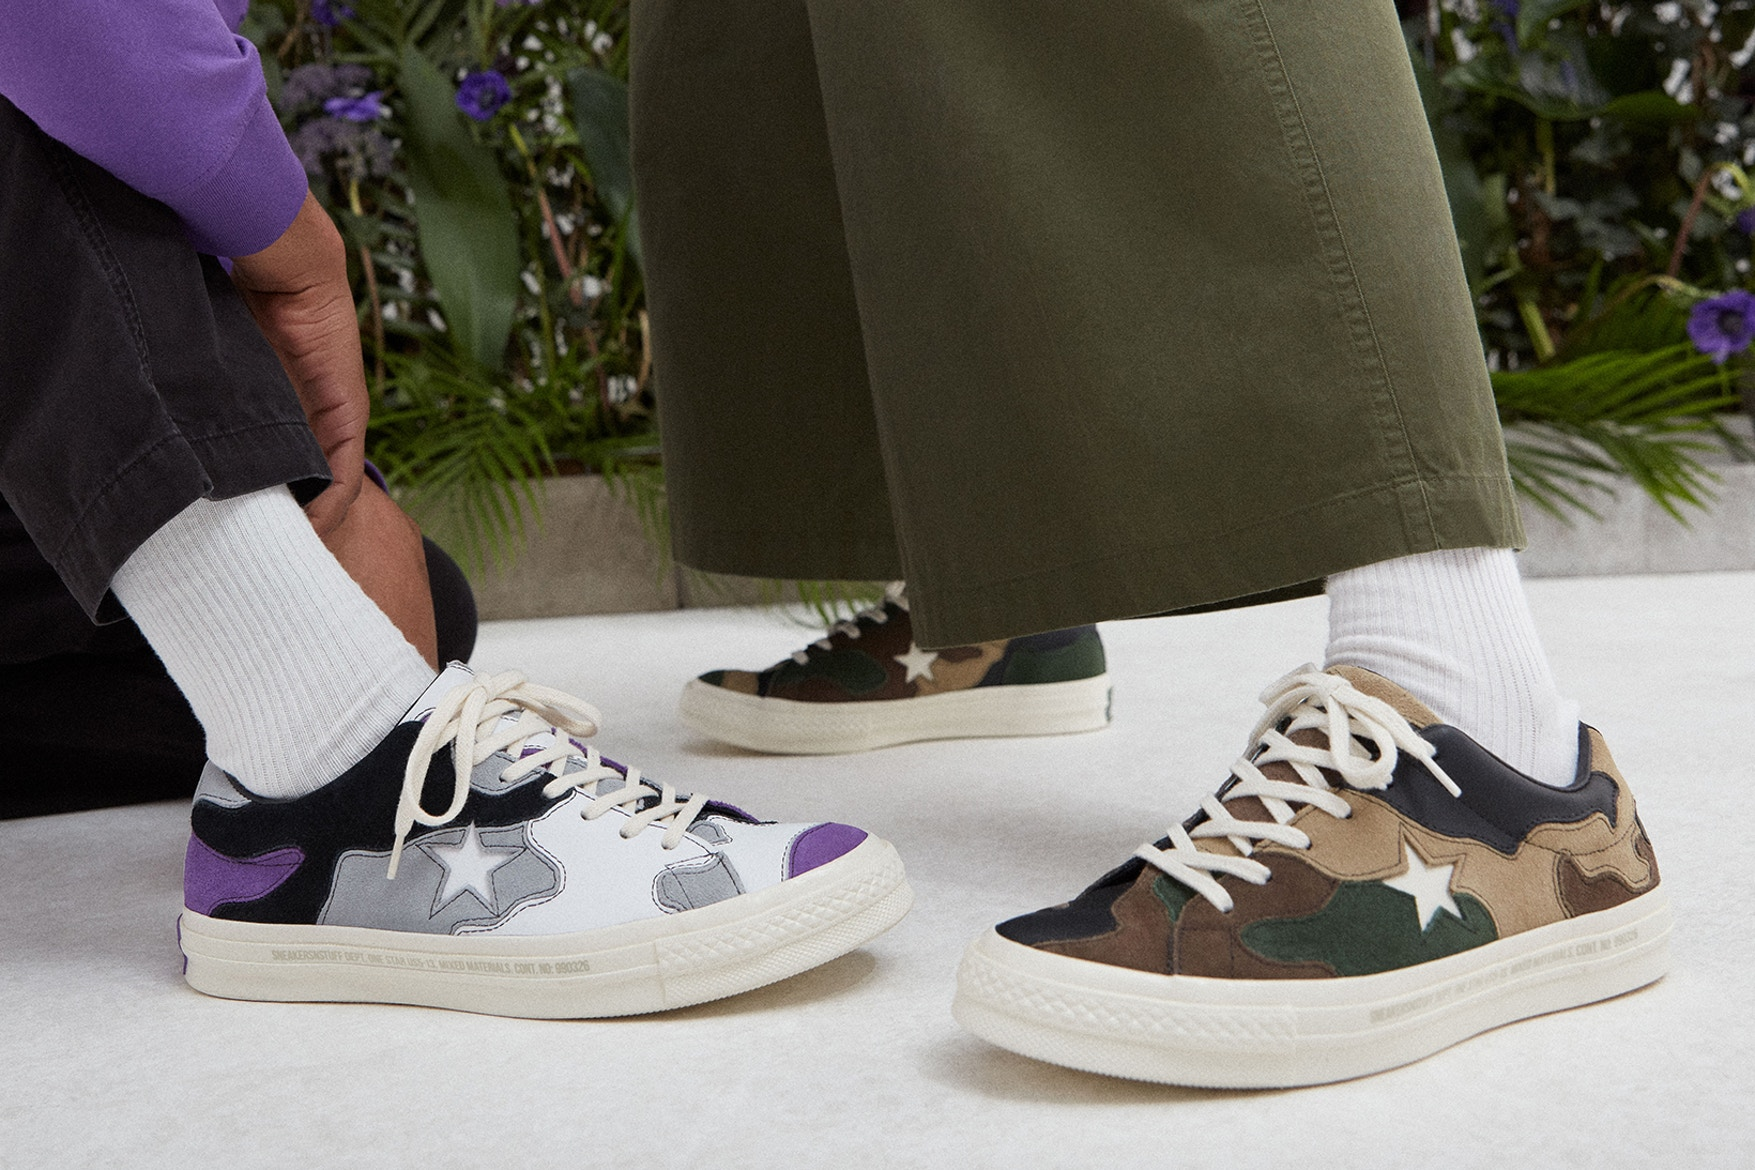 7974f1b5b7535 These Camo One Stars By Converse and Sneakersnstuff Were Made To ...